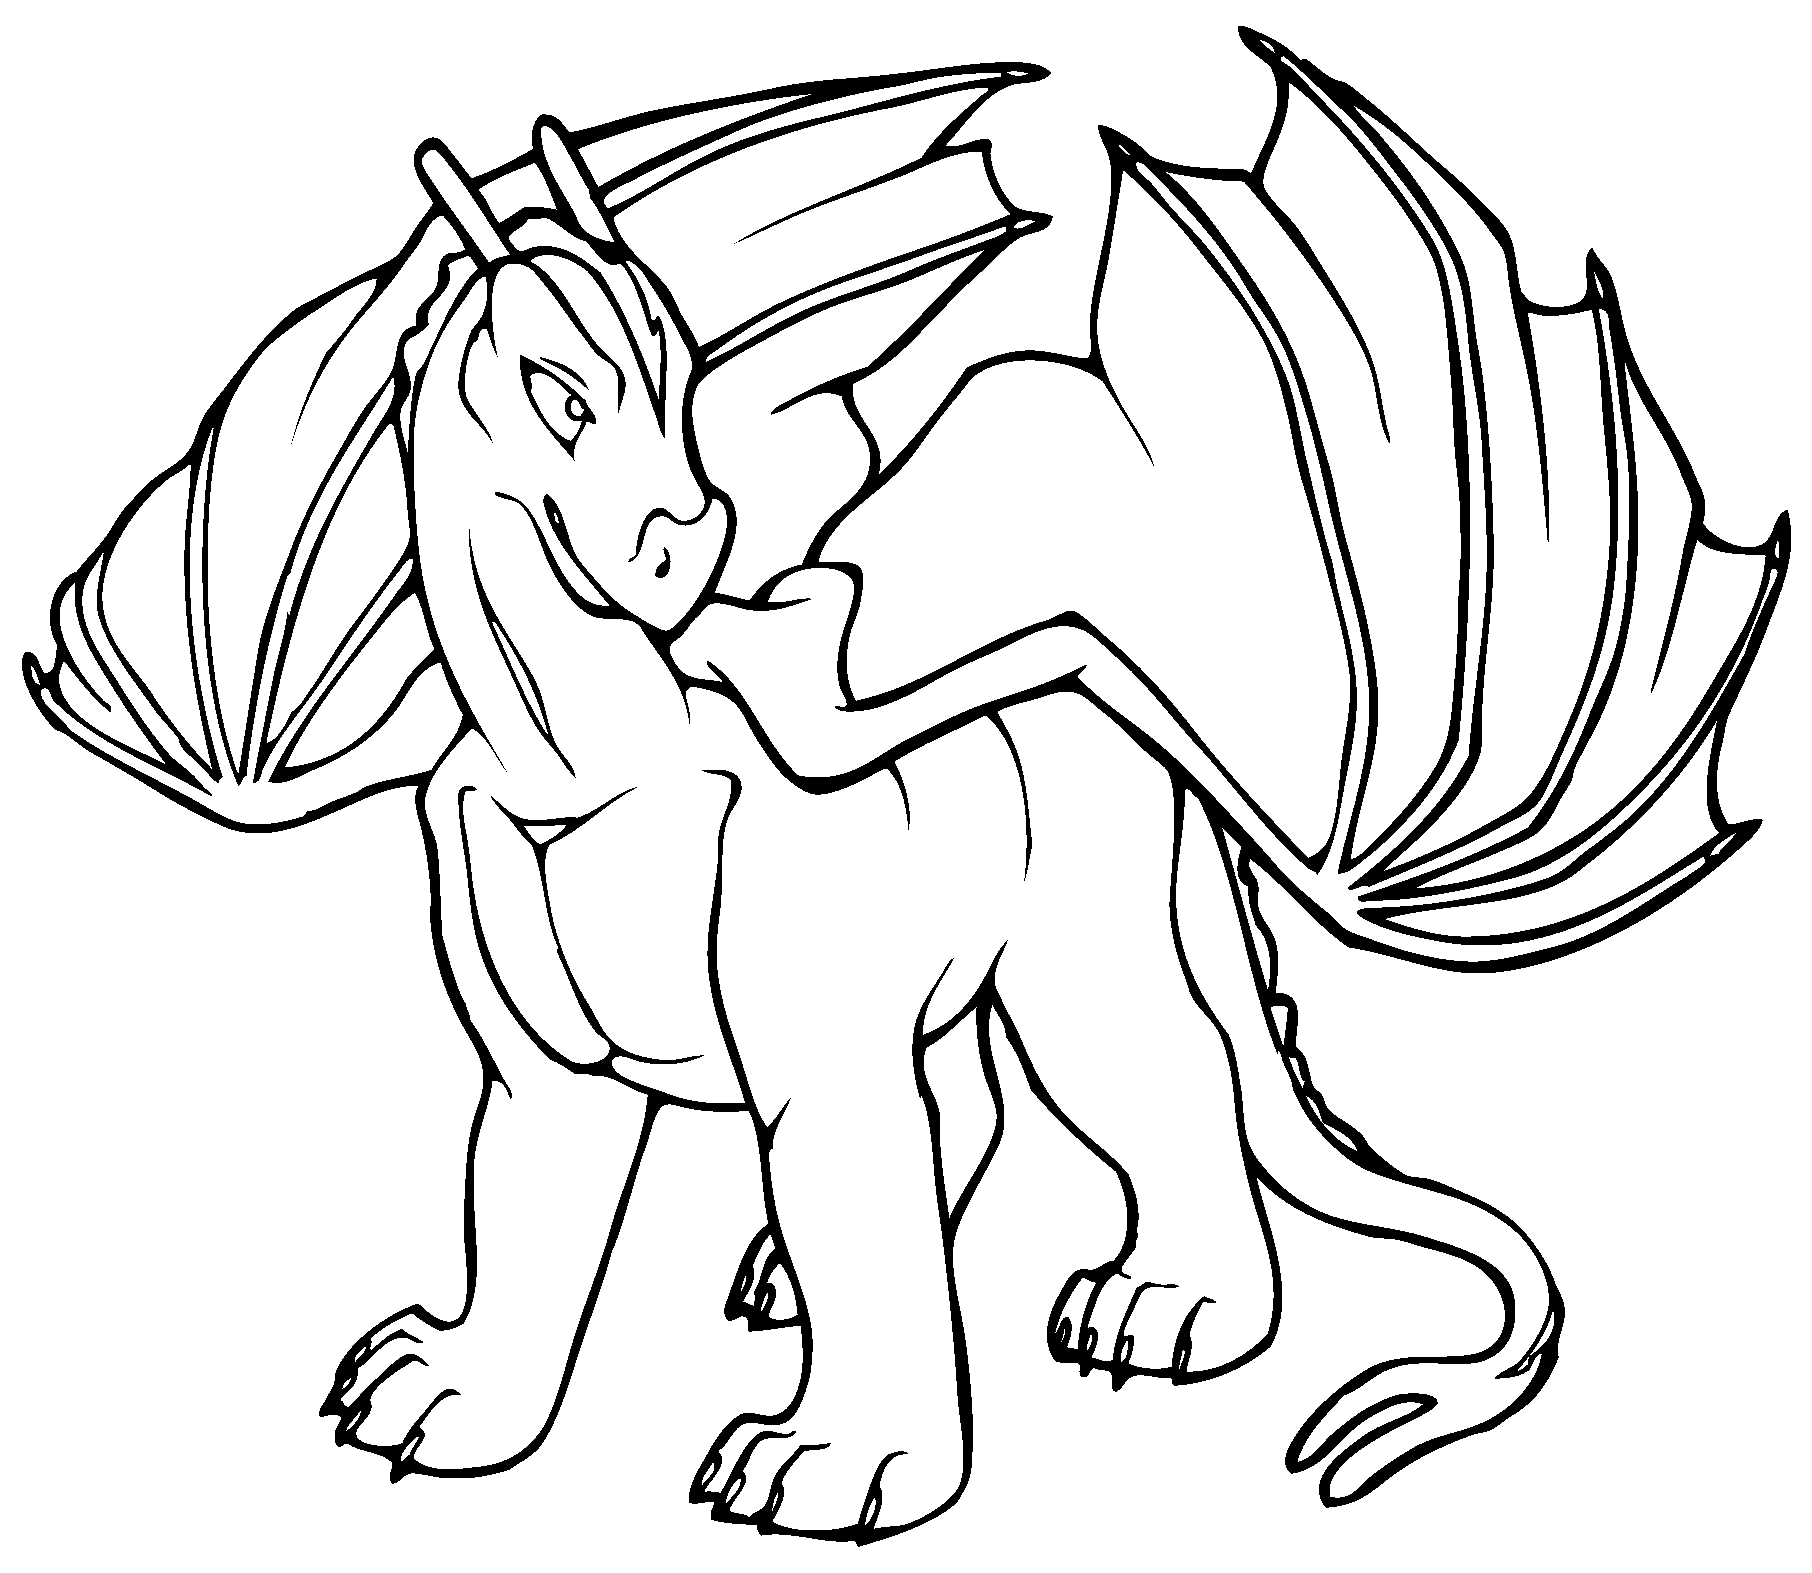 image regarding Dragon Printable Coloring Pages referred to as Free of charge Printable Dragon Coloring Internet pages For Children Puts towards